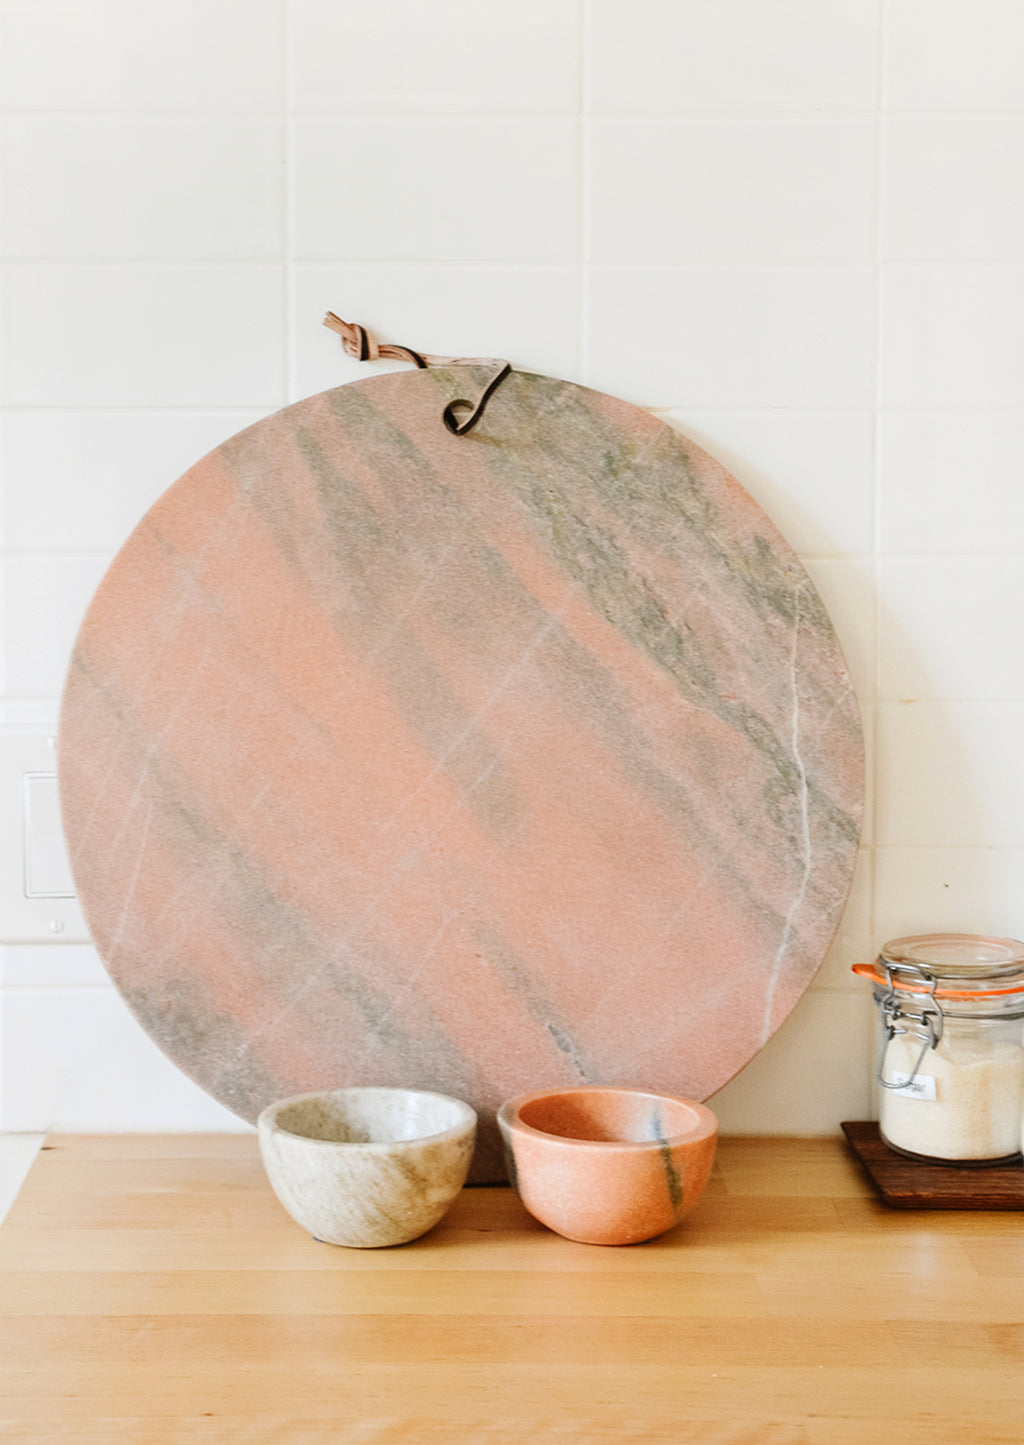 3: Pink and tan marble serving platter and prep bowls on a kitchen counter